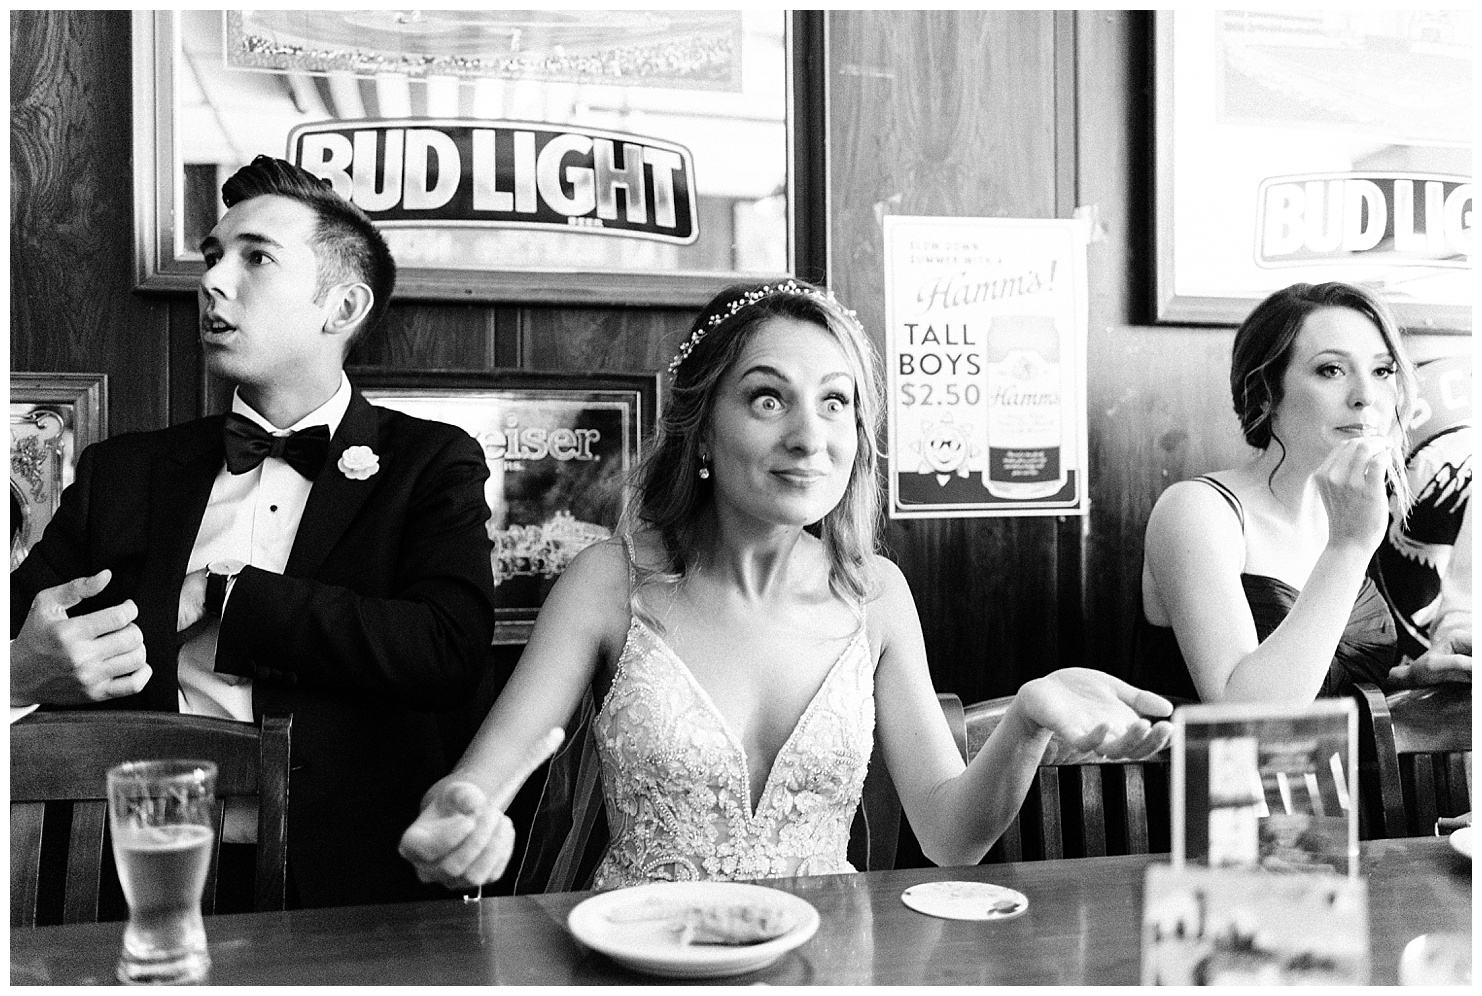 Photo of a bride & groom eating french fries at Jack & Dan's bar in Spokane, Washington by Forthright Photo